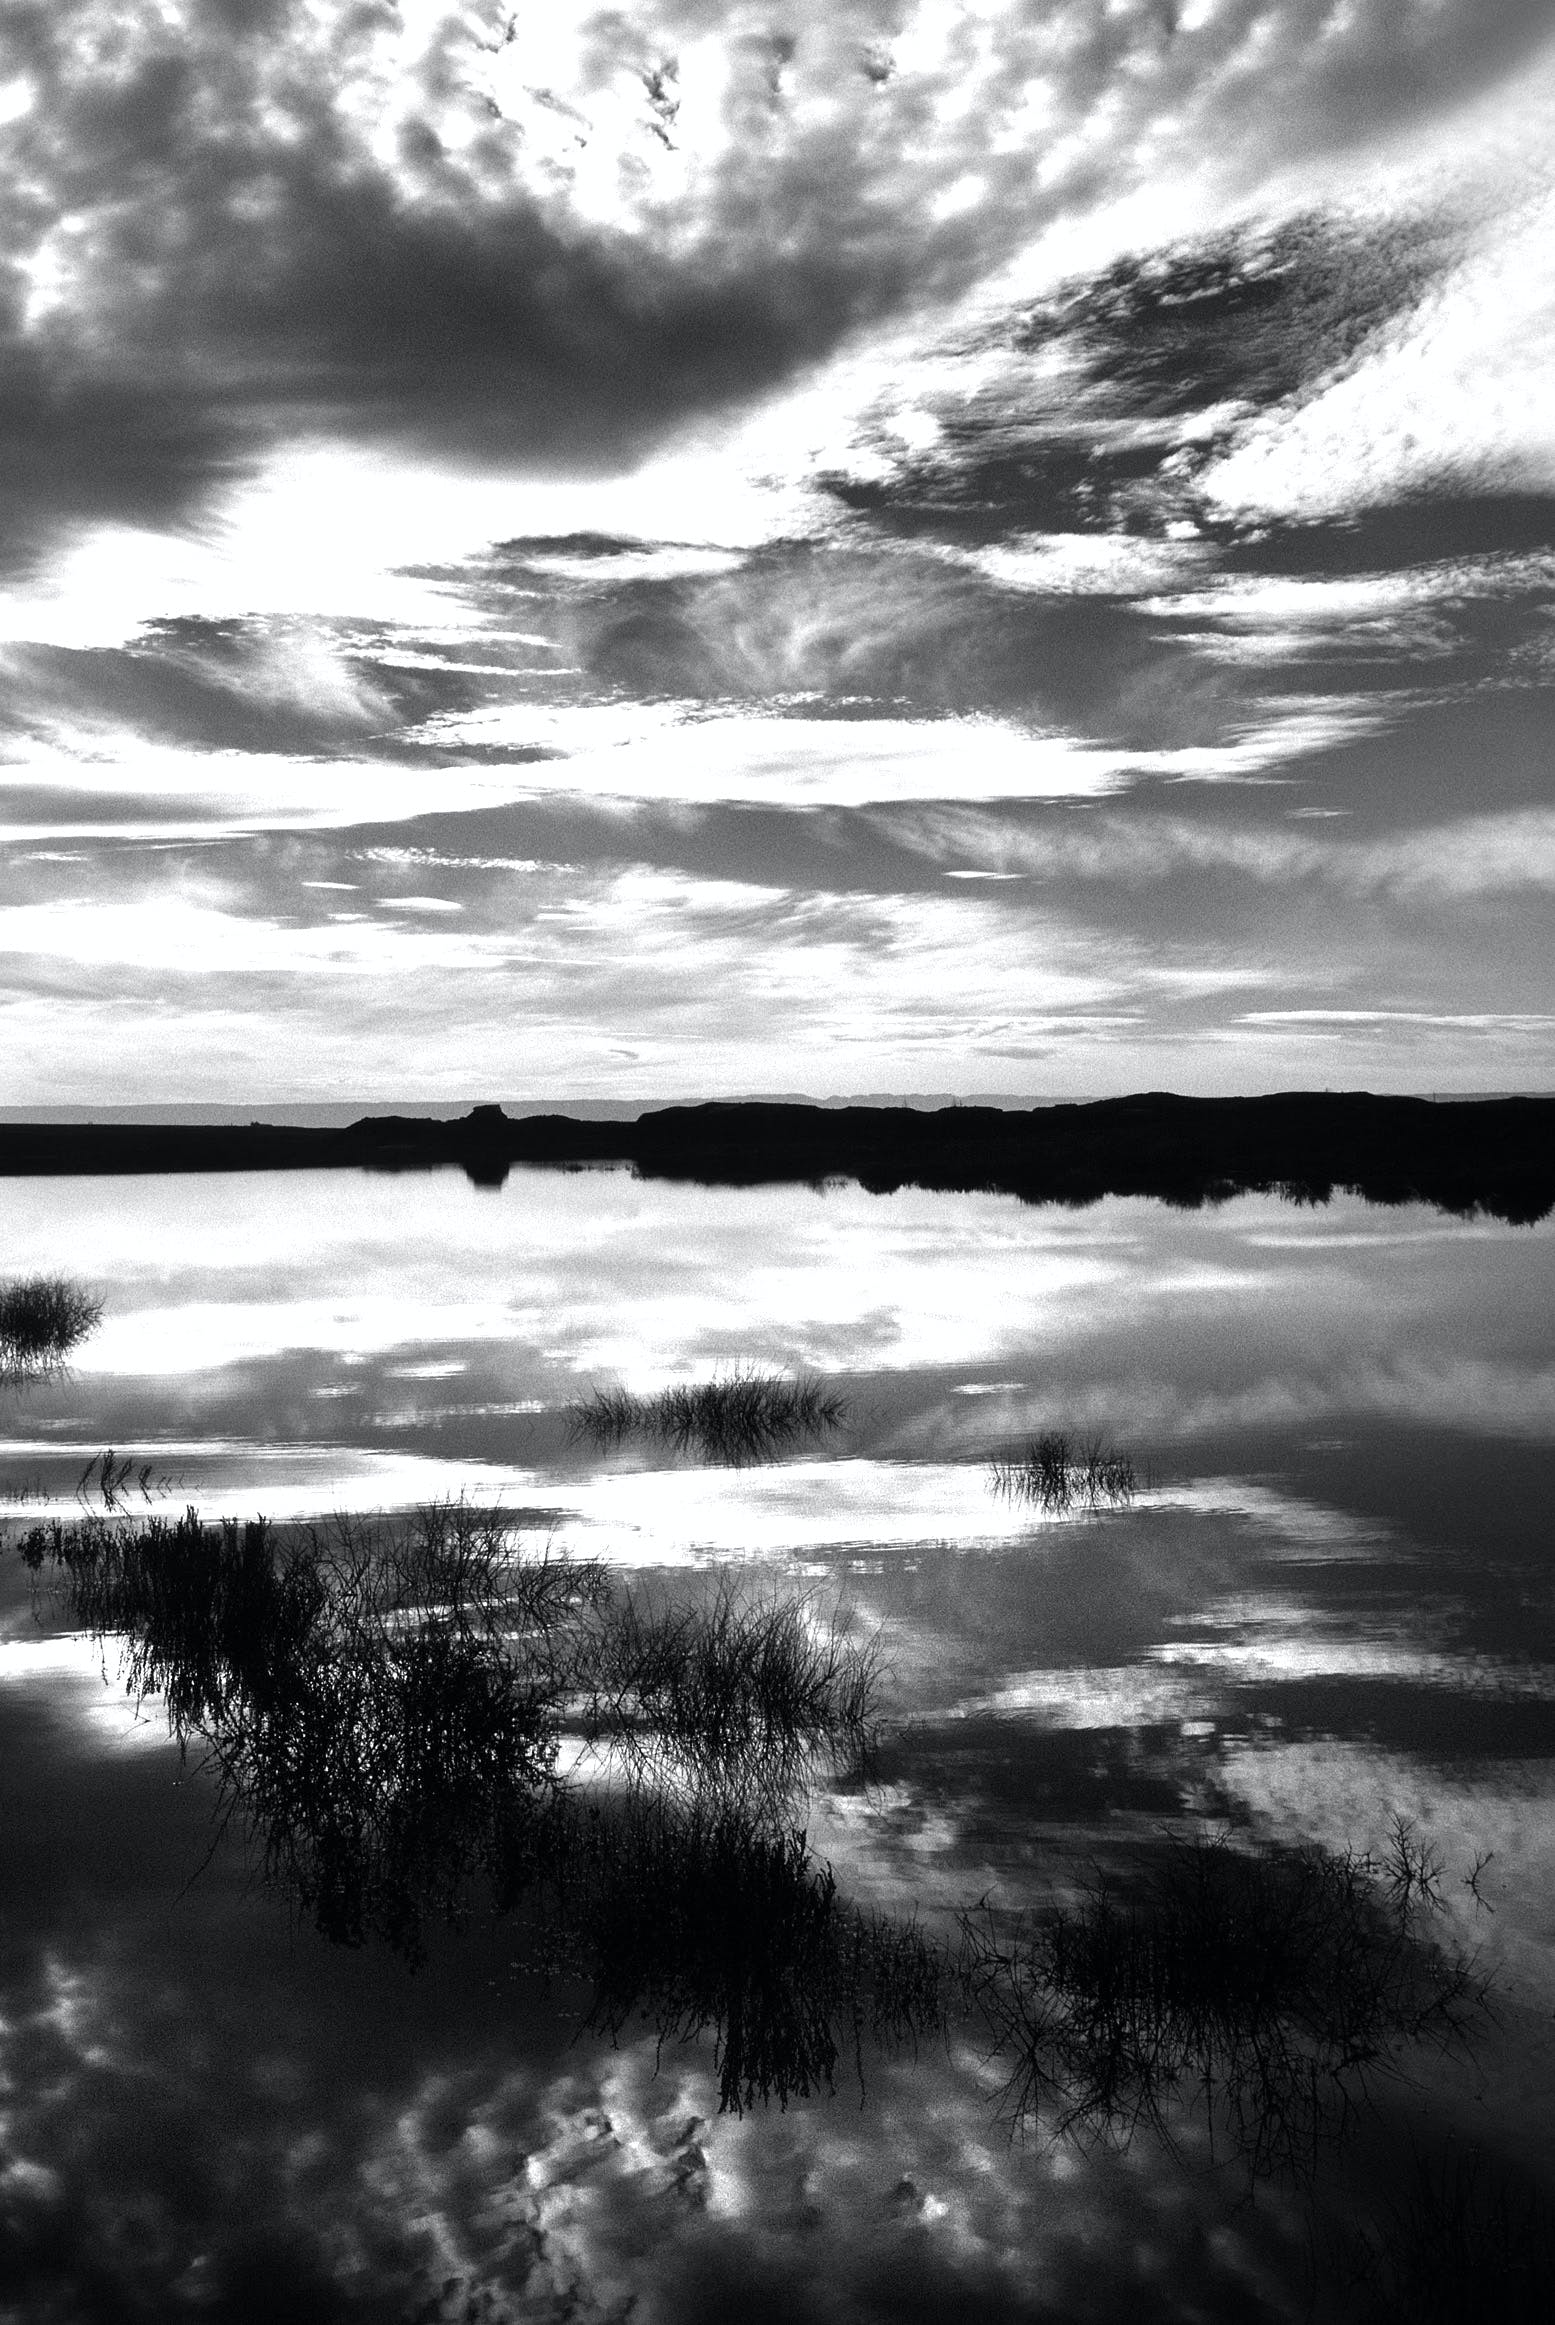 Grayscale Photo of Grass Near Body of Water Under Clouds